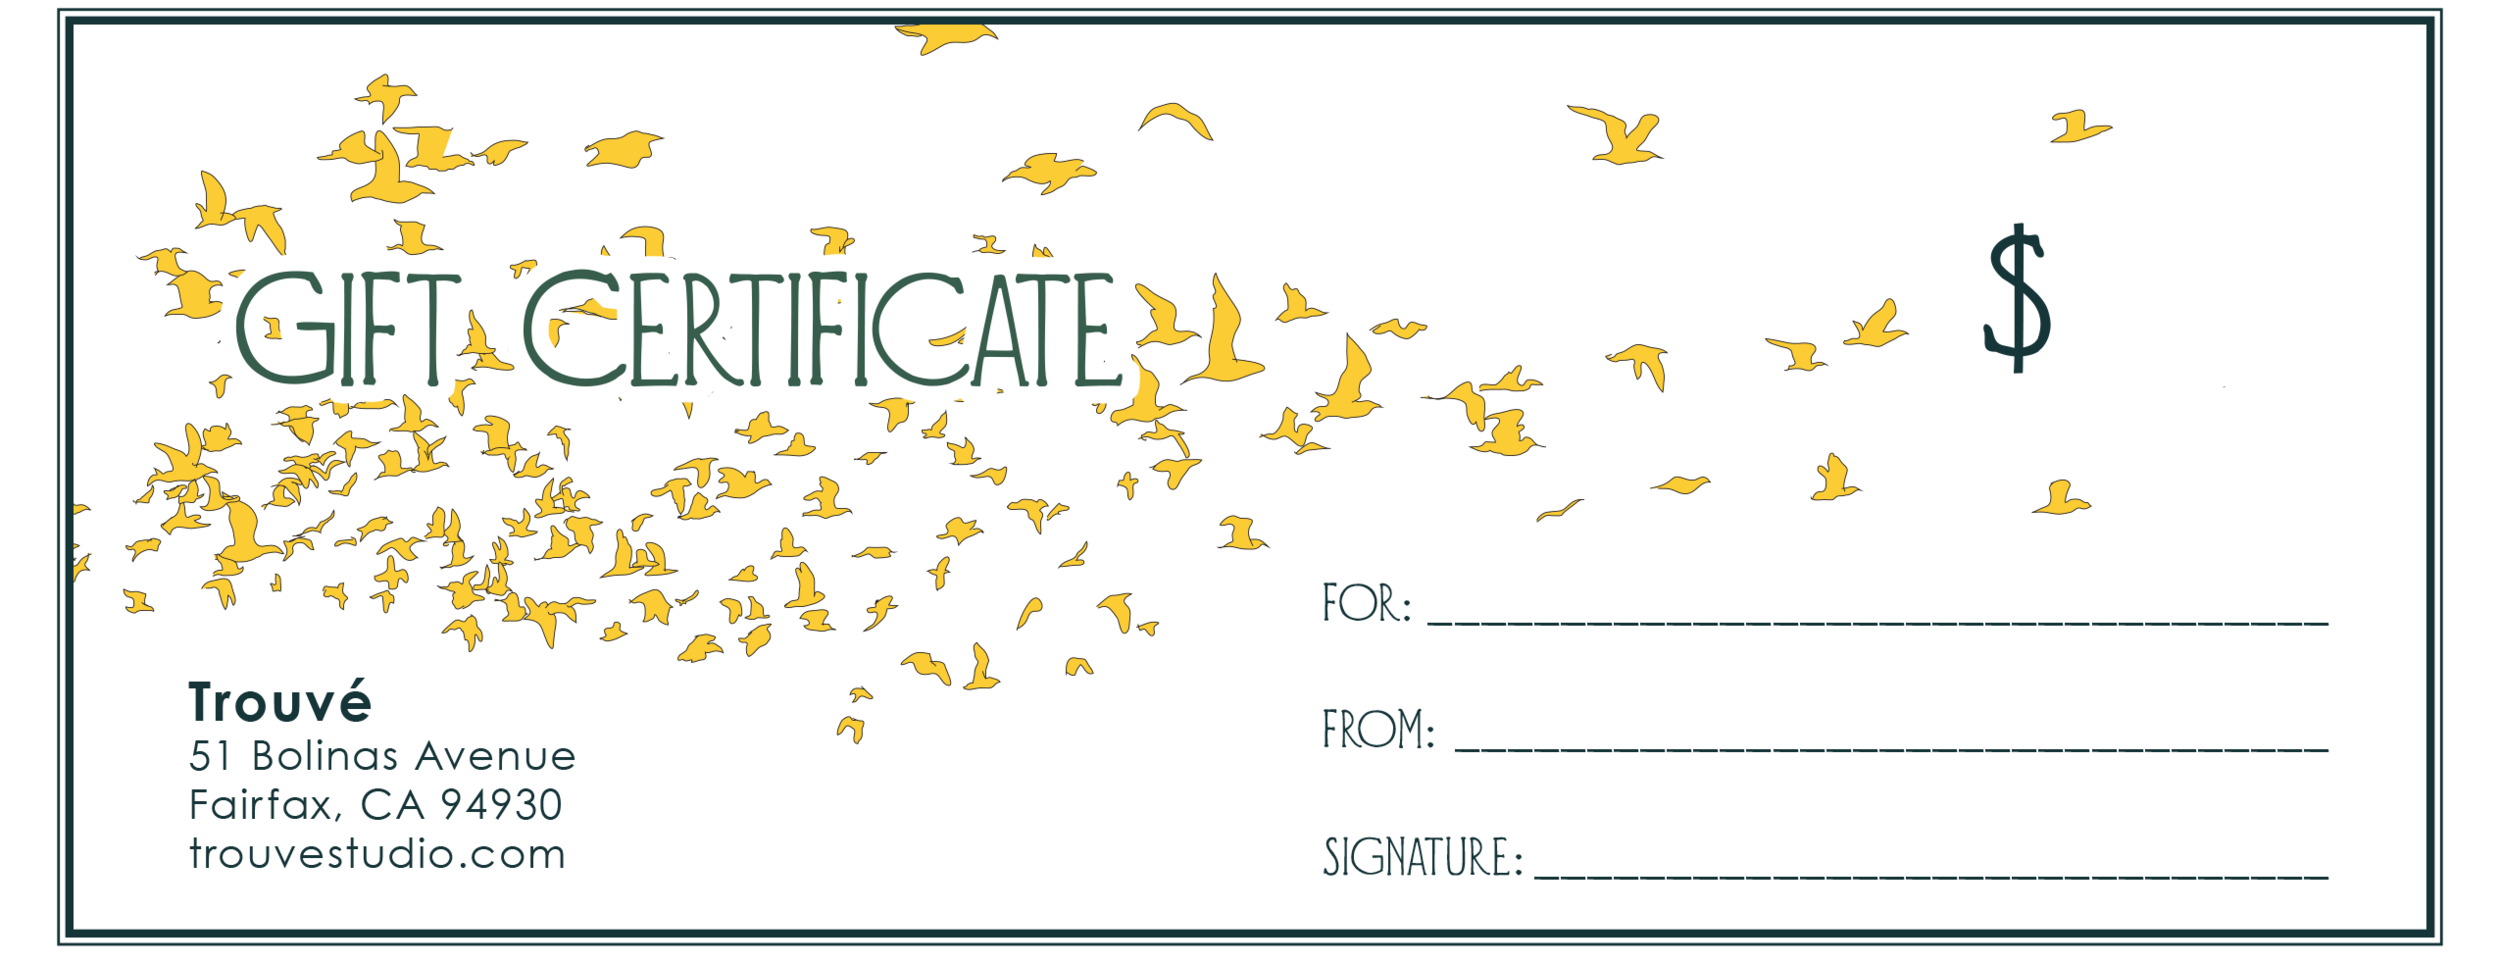 trouve-gift-certificate-2017-final.png